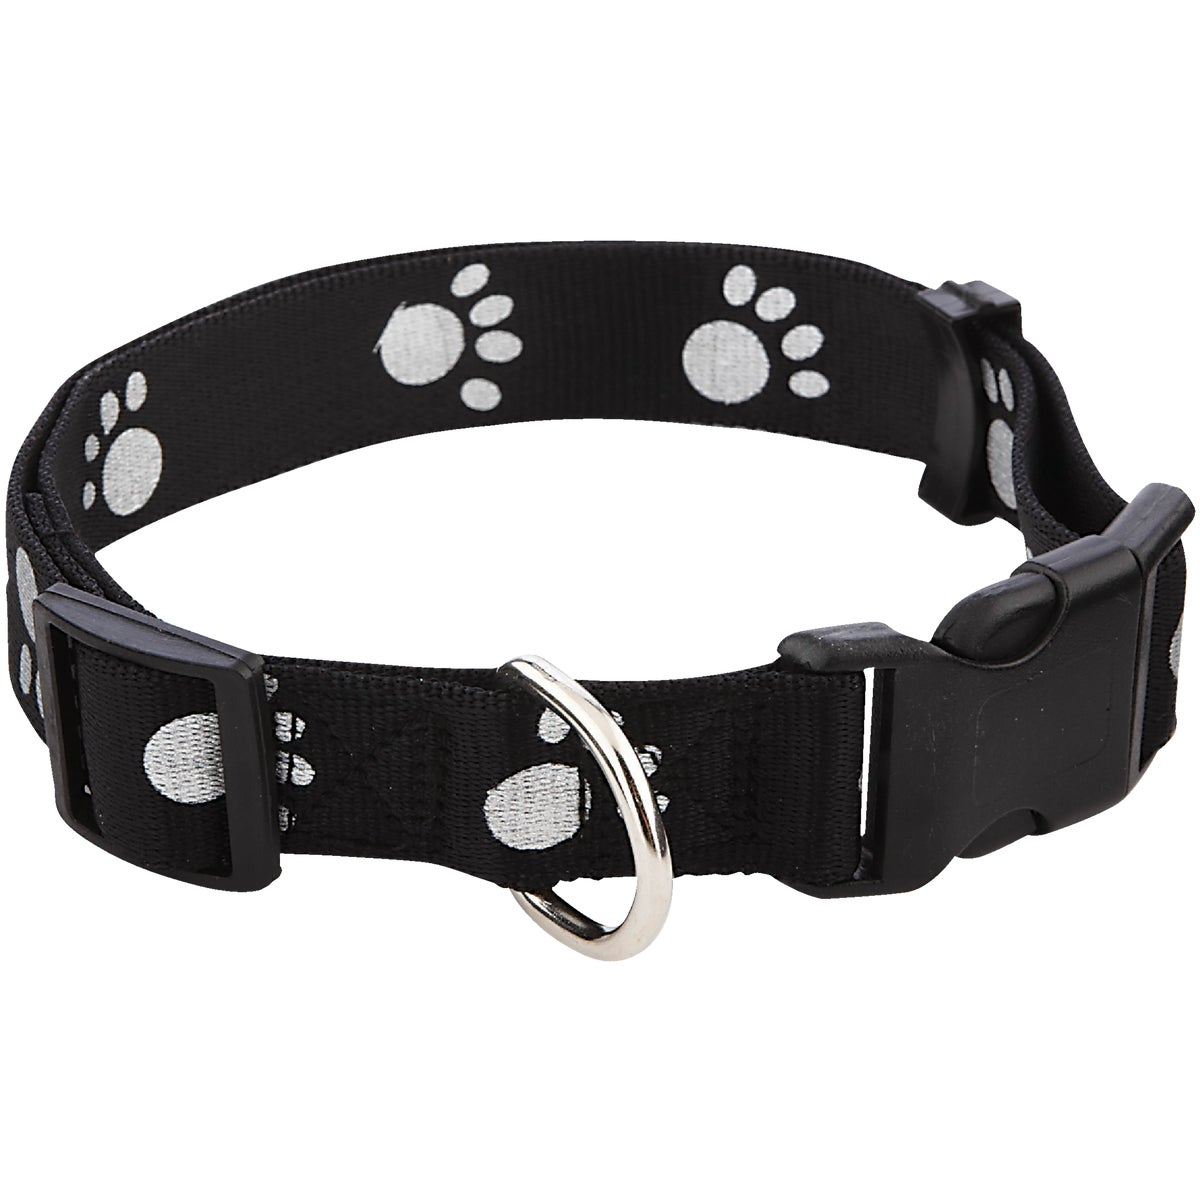 1X18-26 PAW REFL COLLAR - 39243 by Westminster Pet